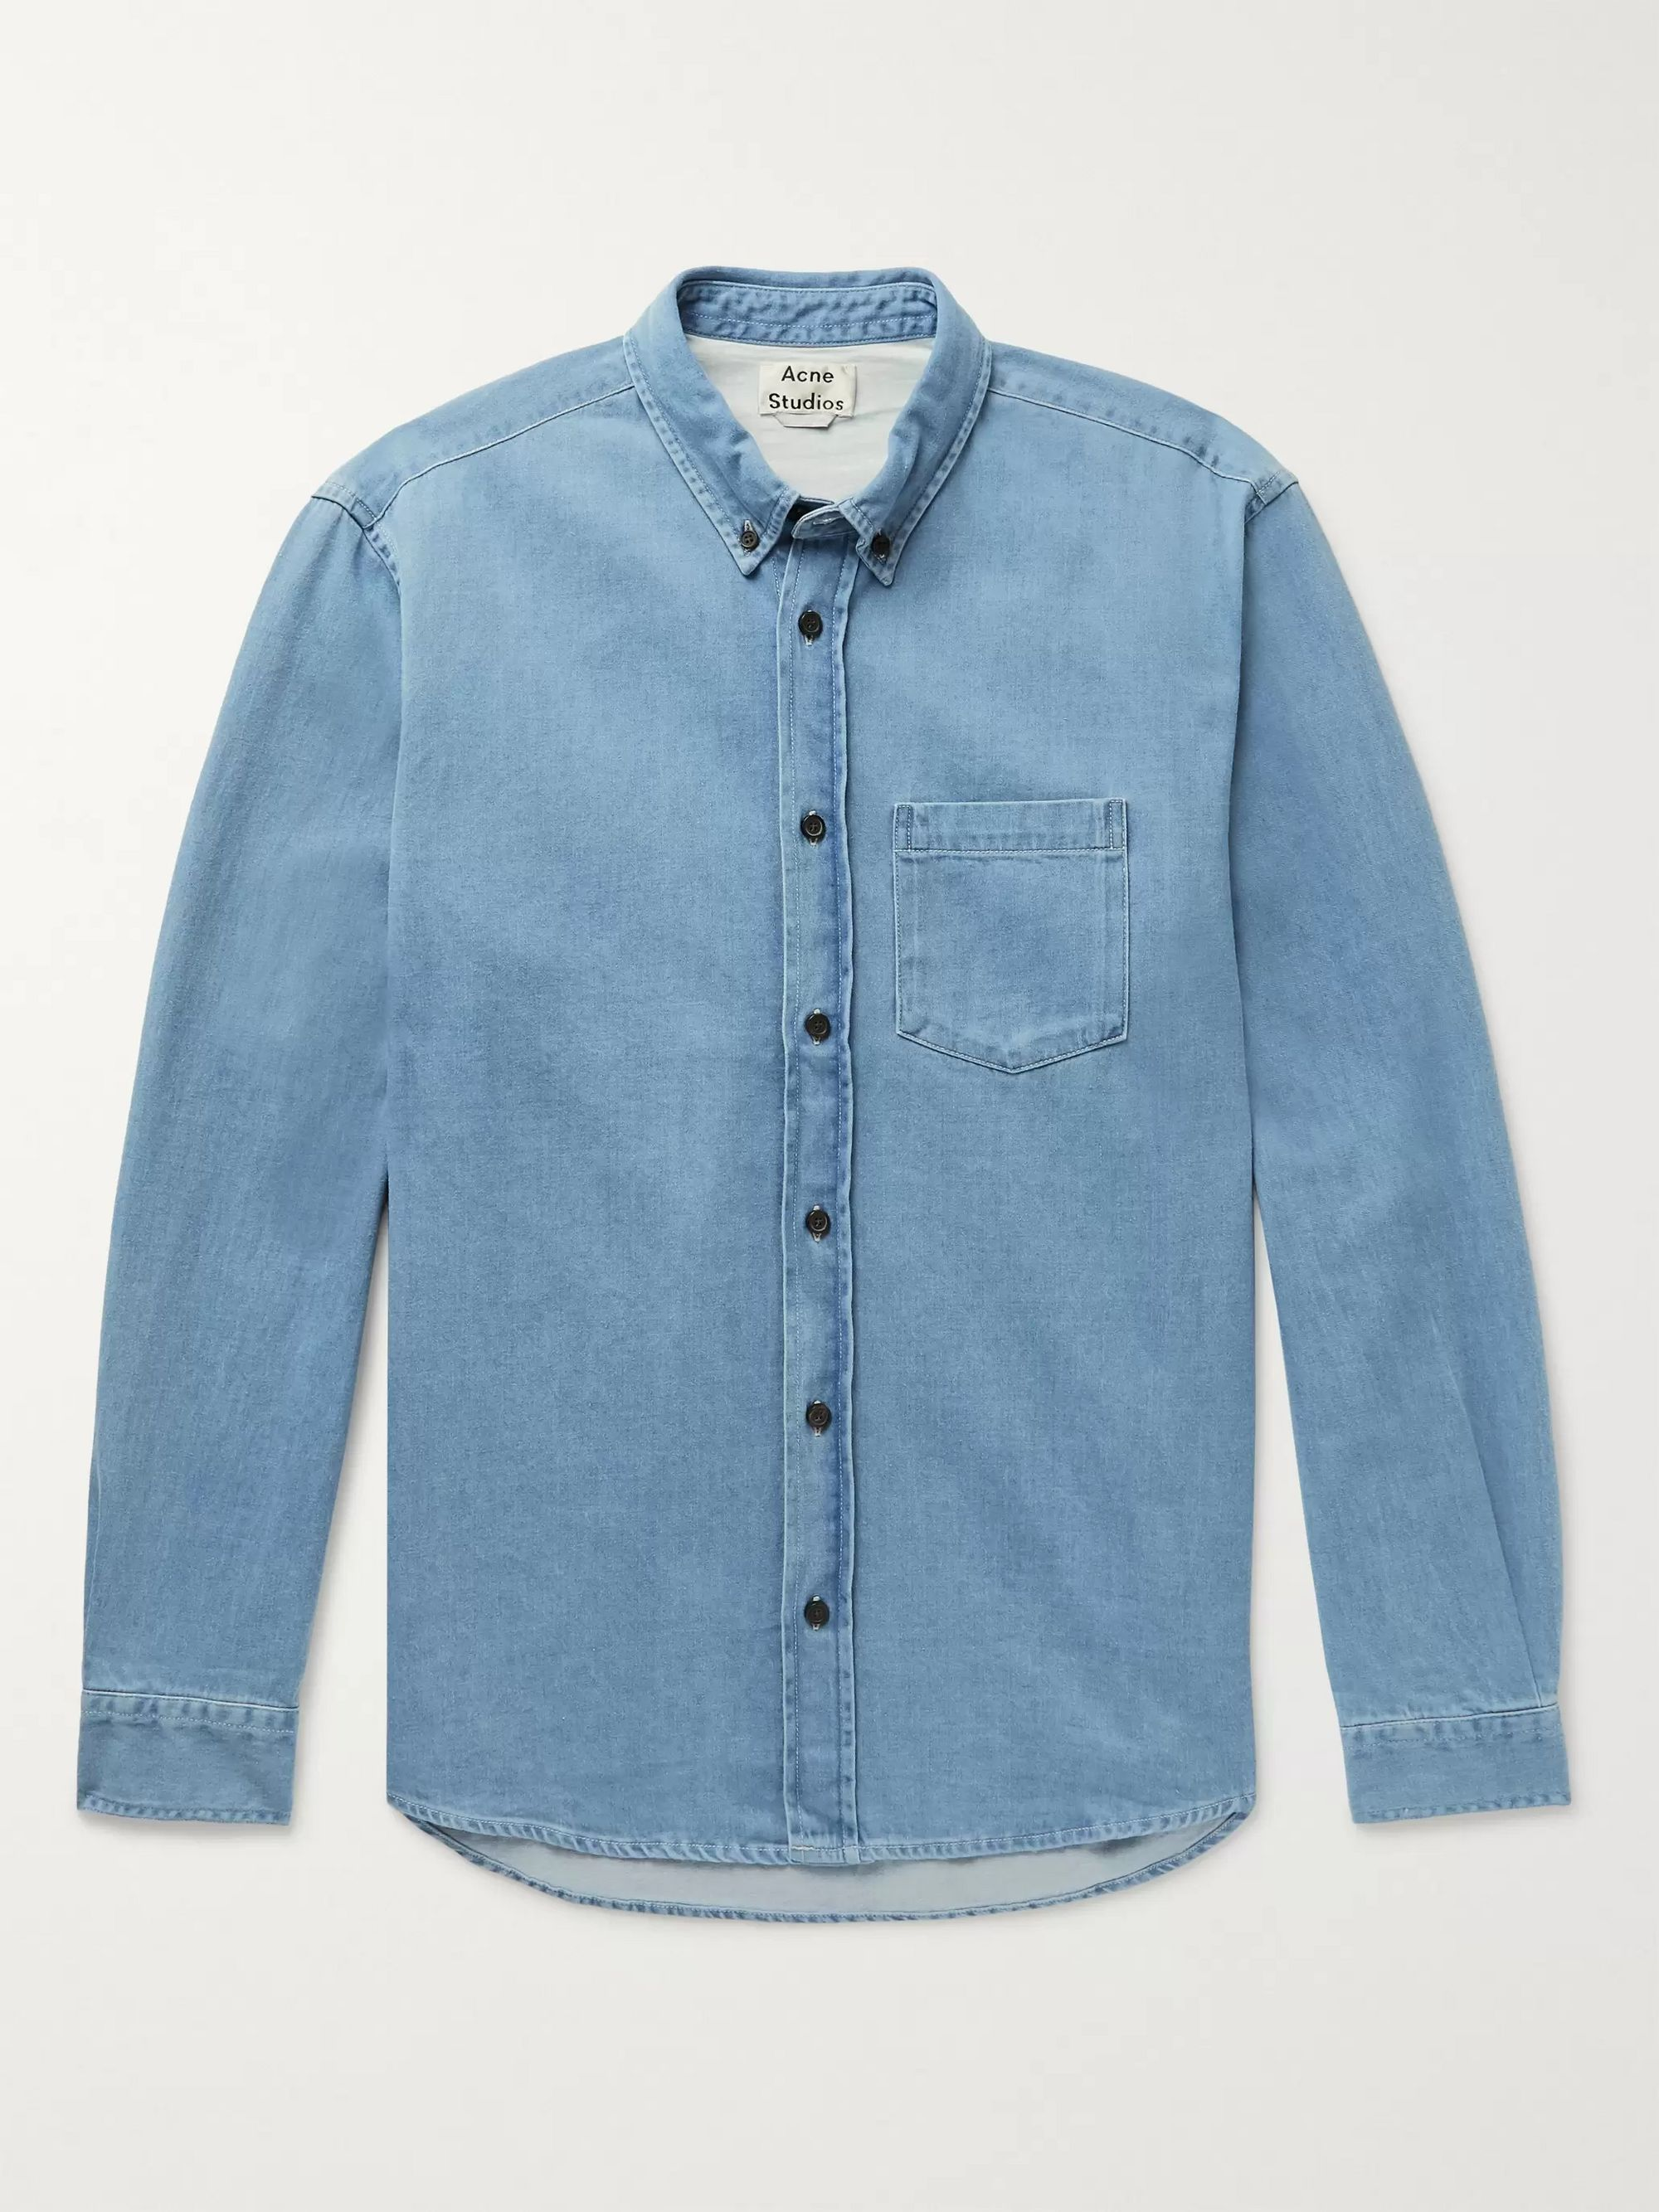 아크네 스튜디오 Acne Studios Slim-Fit Button-Down Collar Denim Shirt,Light blue